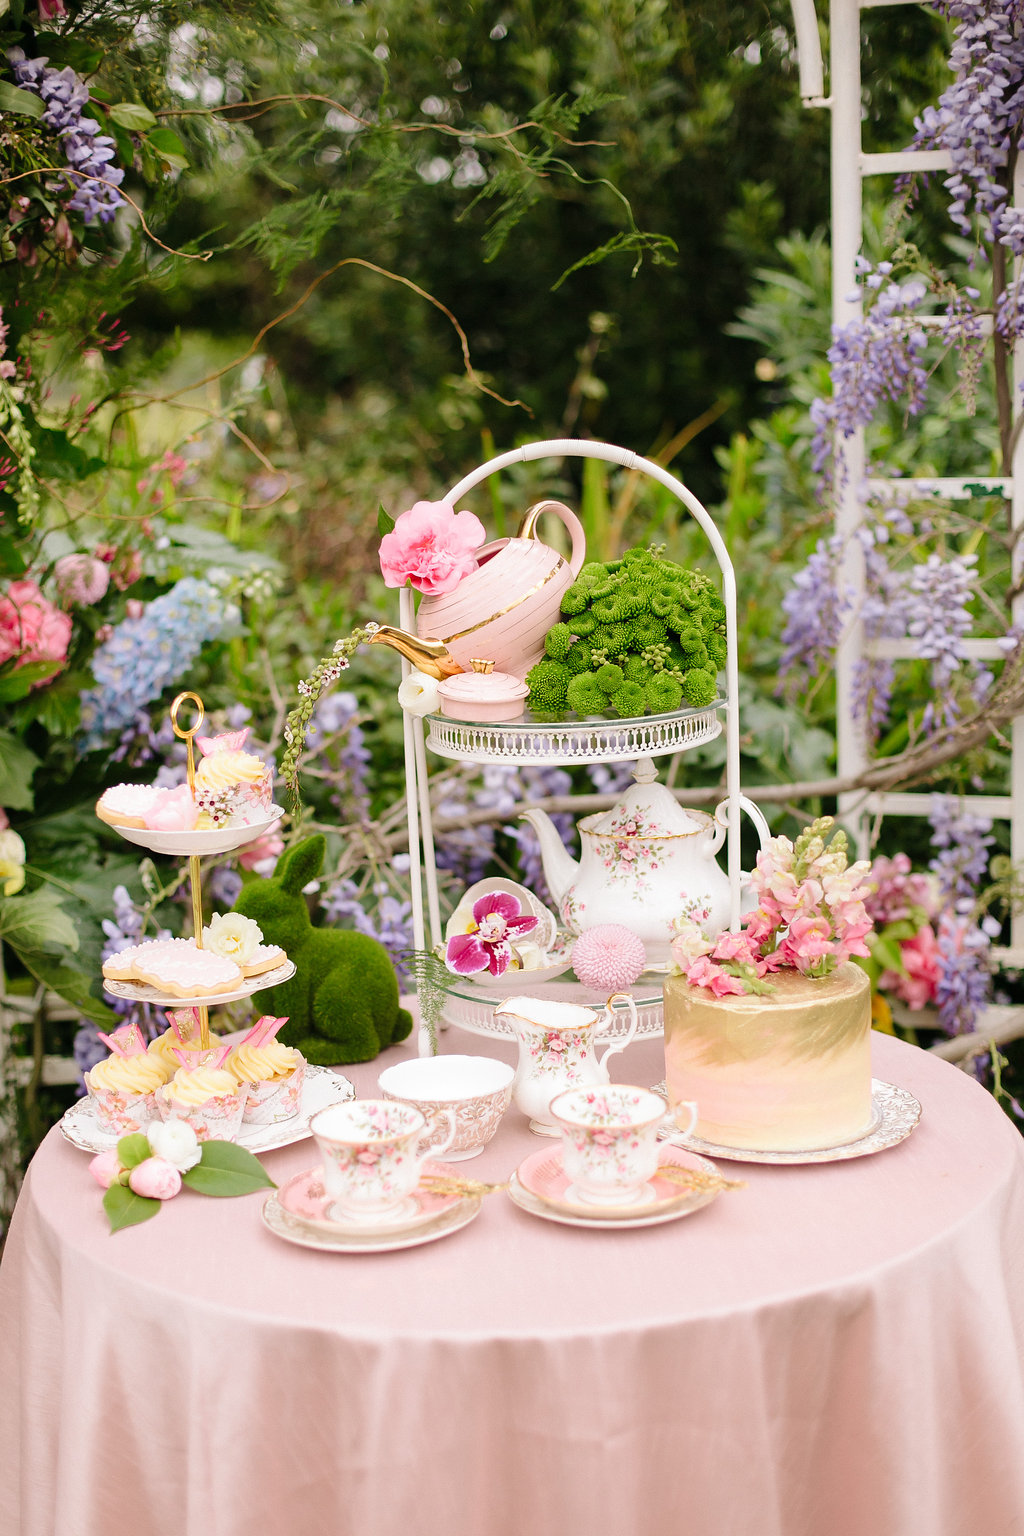 Vintage High Tea Wedding Inspiration | Image: Nelani Van Zyl